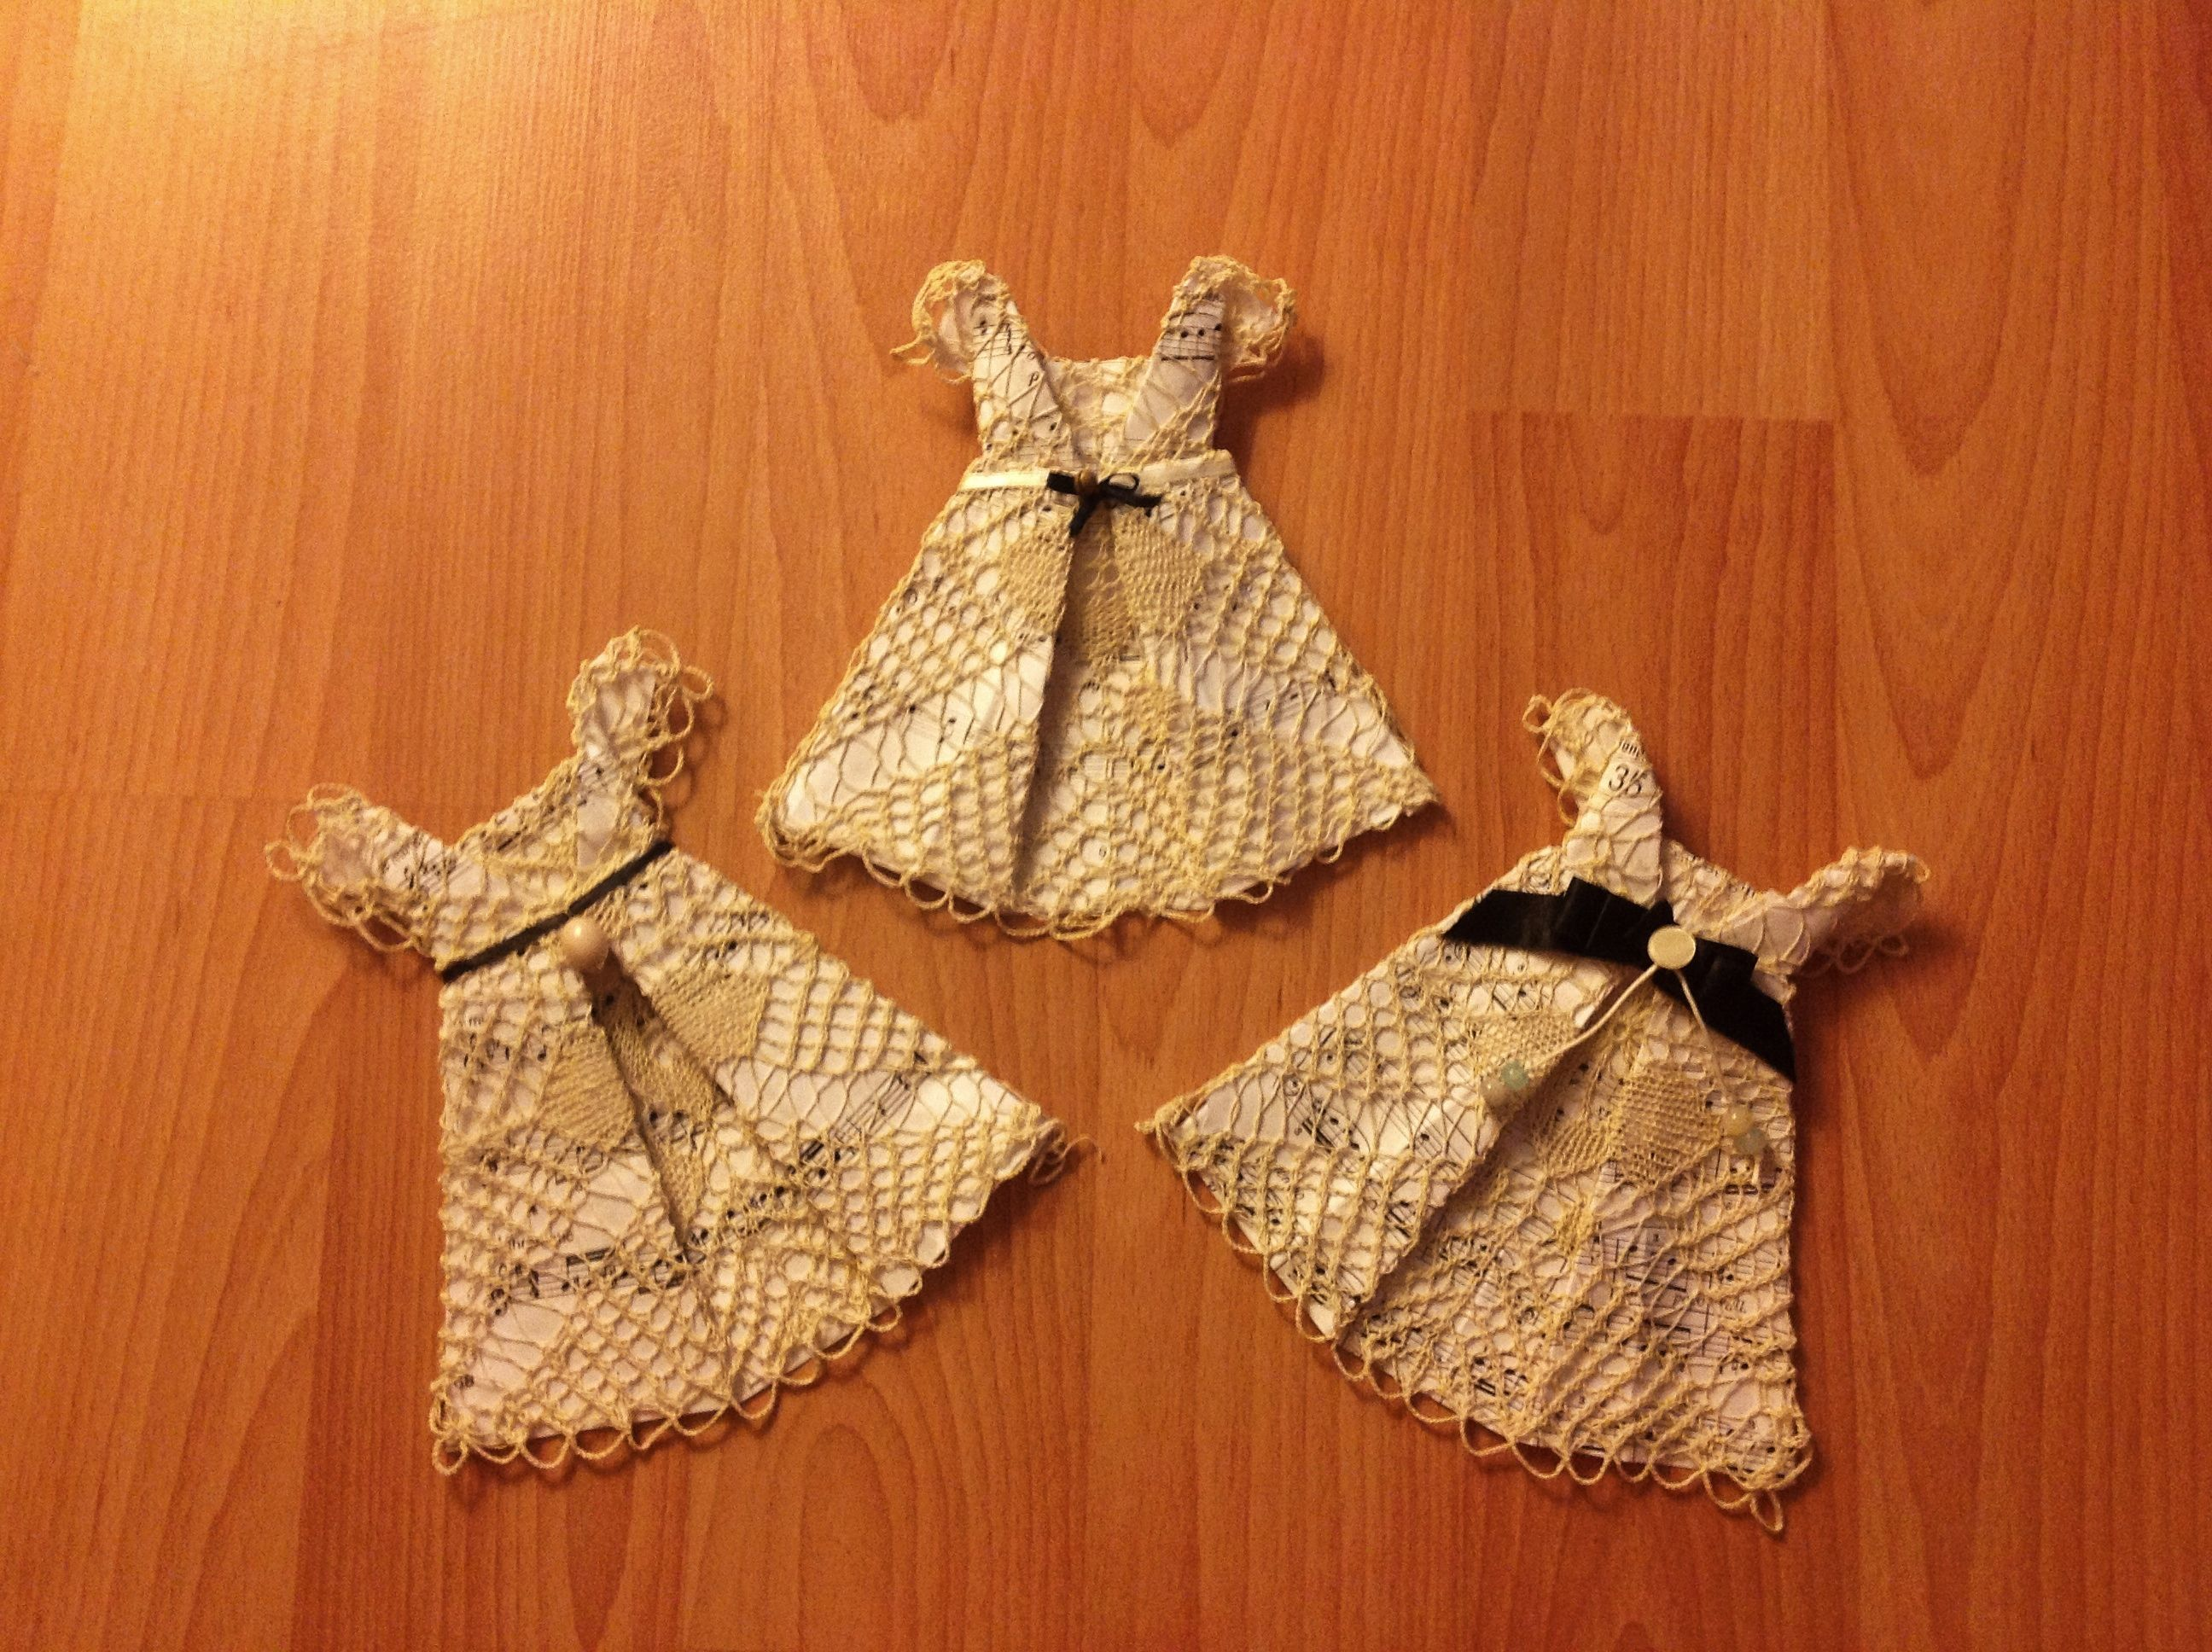 Origami dress design with music sheet and doily. #origami #doily #lace #diy